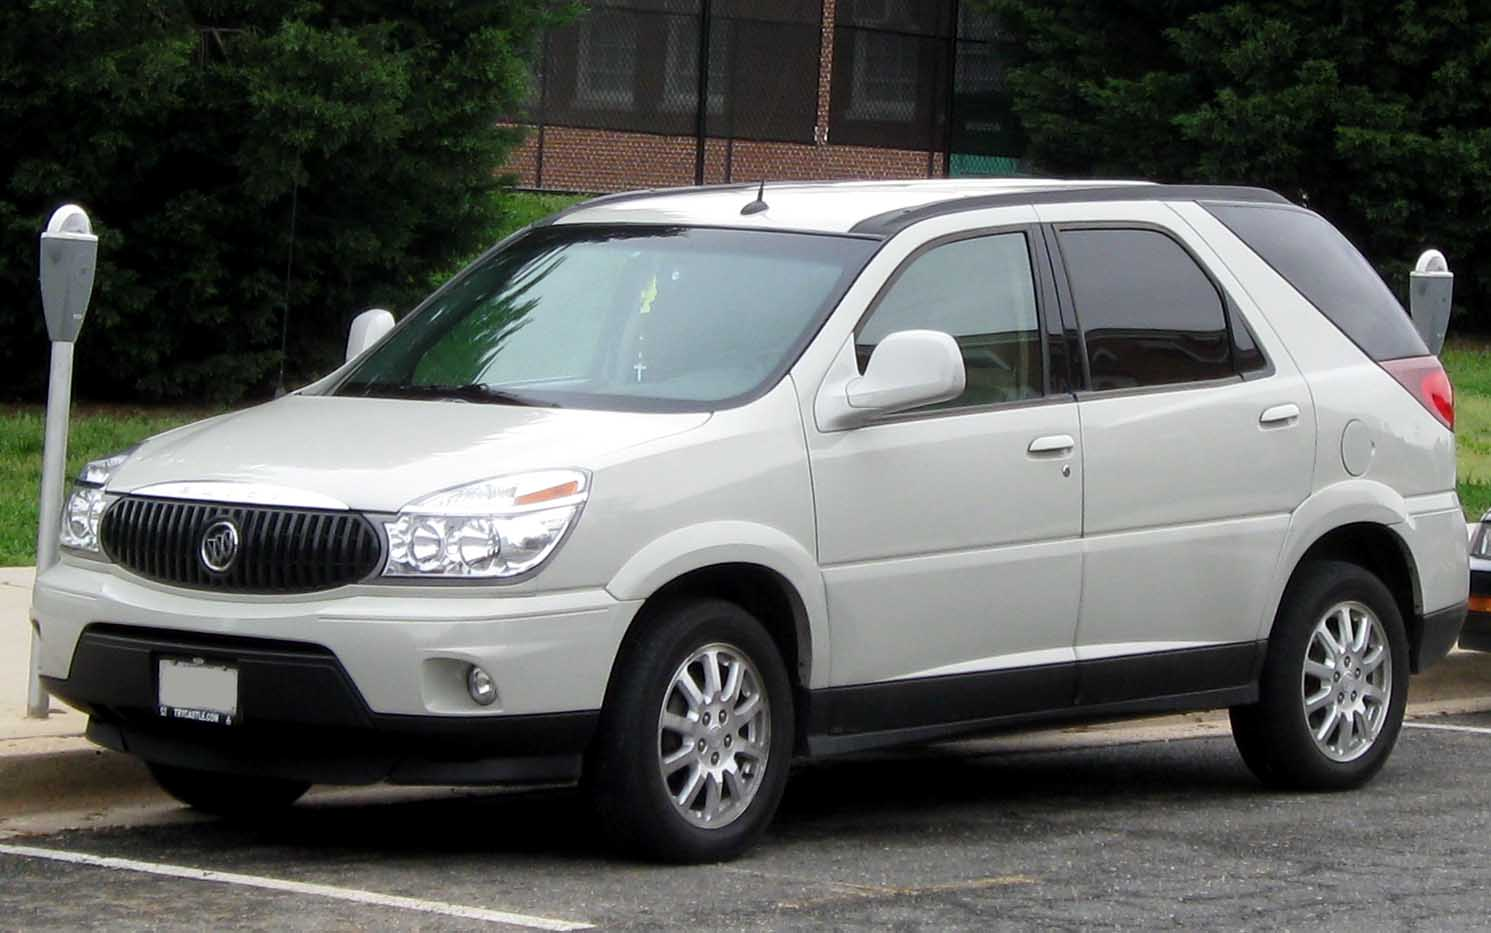 2002 buick rendezvous information and photos zombiedrive. Black Bedroom Furniture Sets. Home Design Ideas